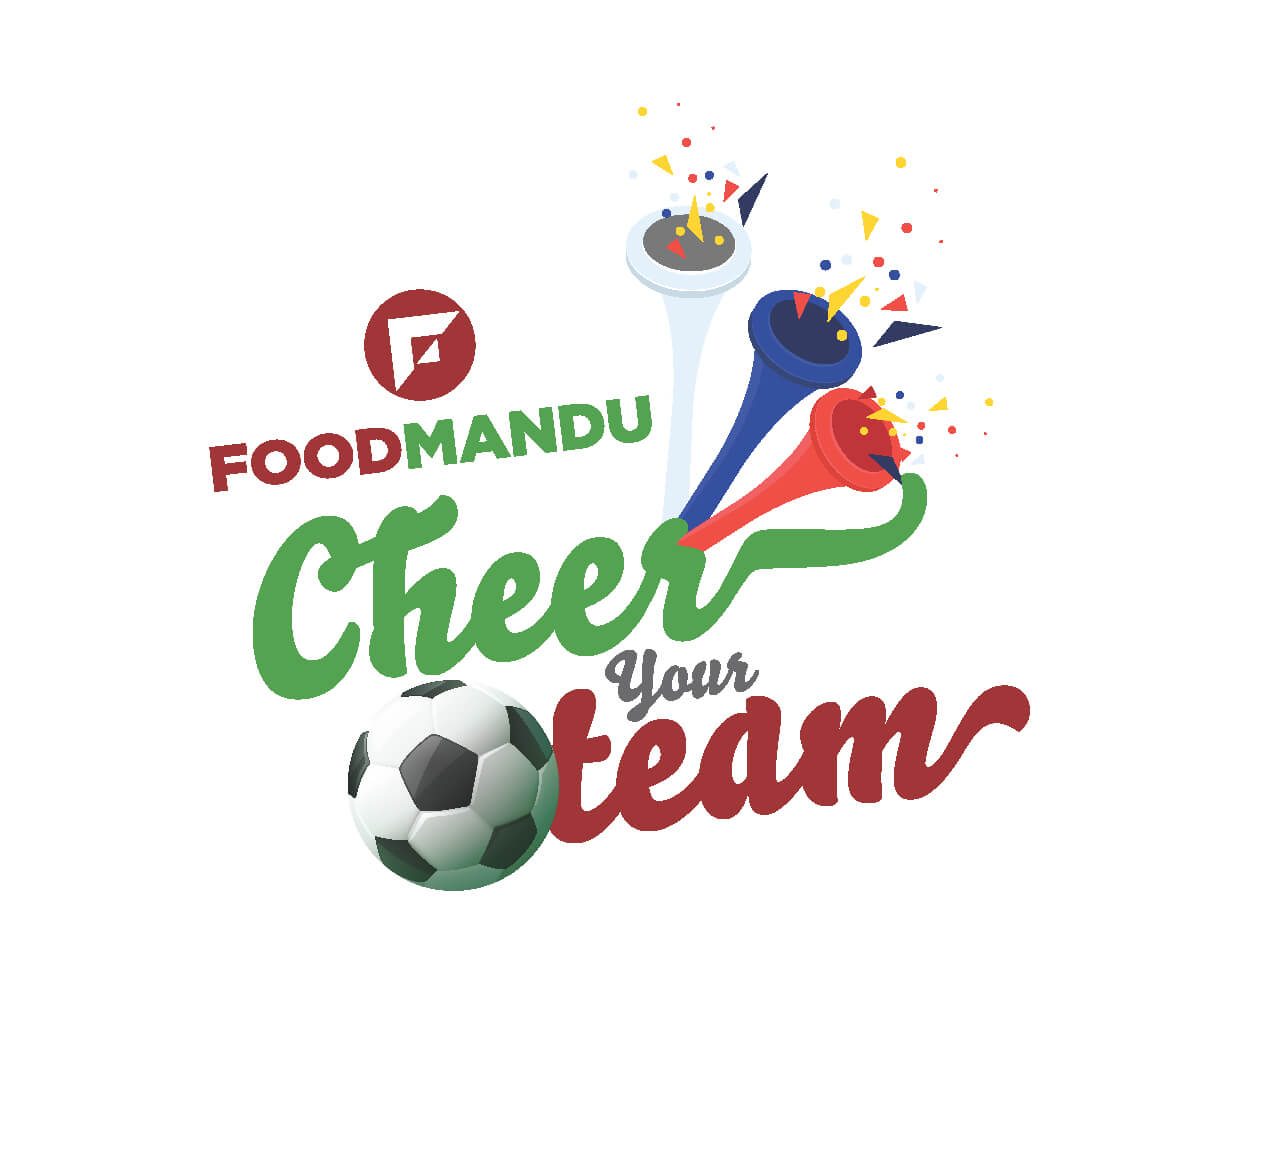 Foodmandu offers